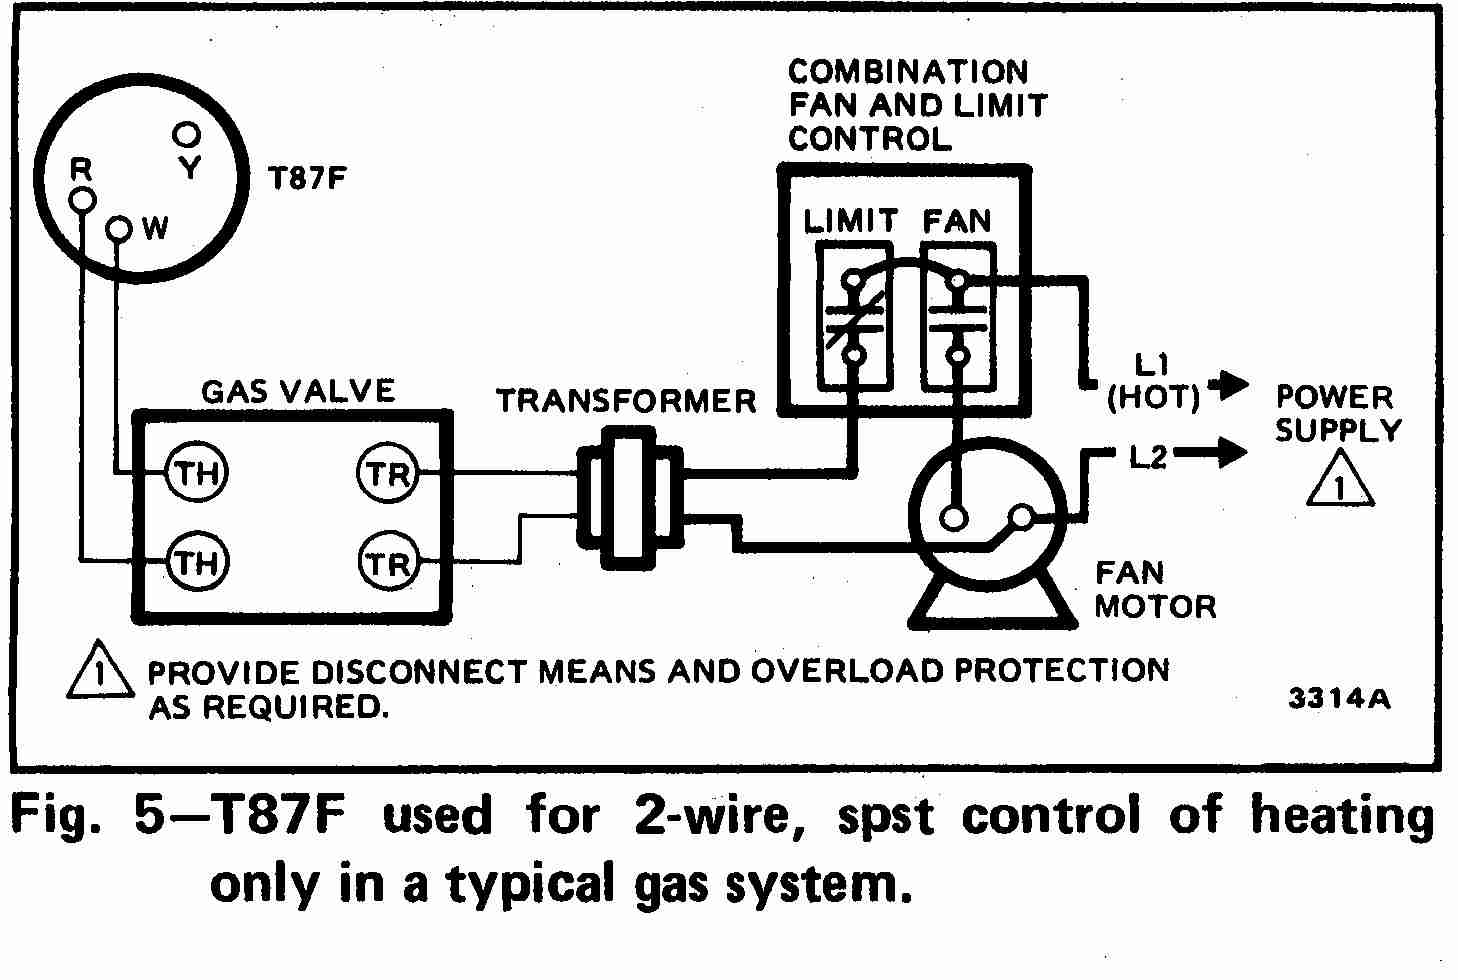 Guide To Wiring Connections For Room Thermostats T Mobile Diagrams Honeywell T87f Thermostat Diagram 2 Wire Spst Control Of Heating Only In